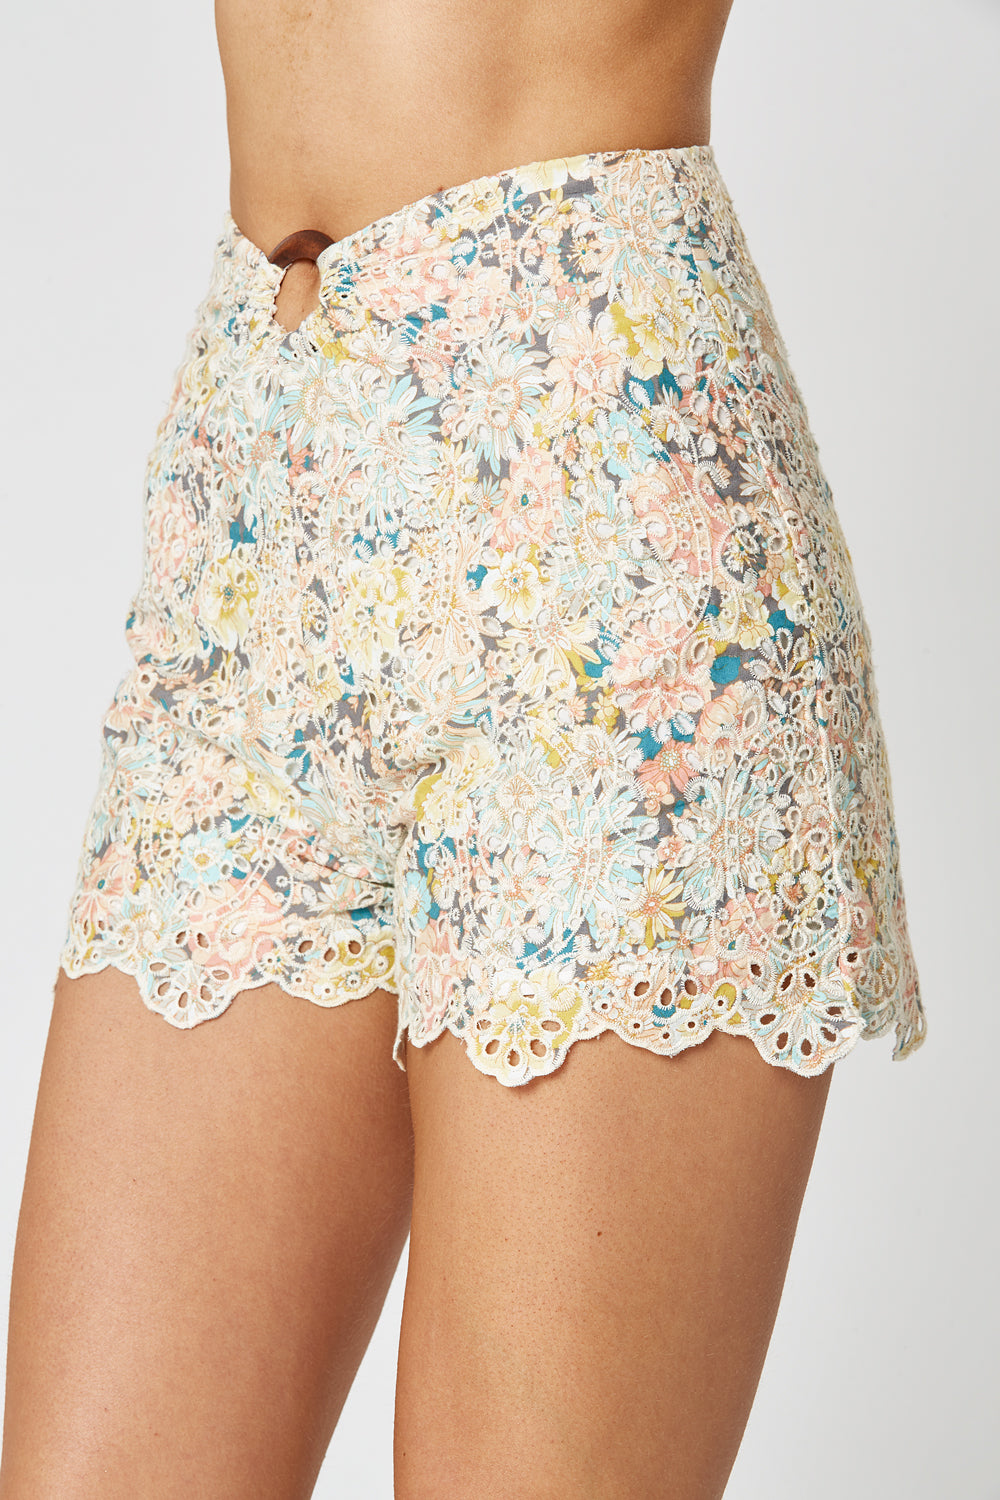 SUNBURST SHORTS